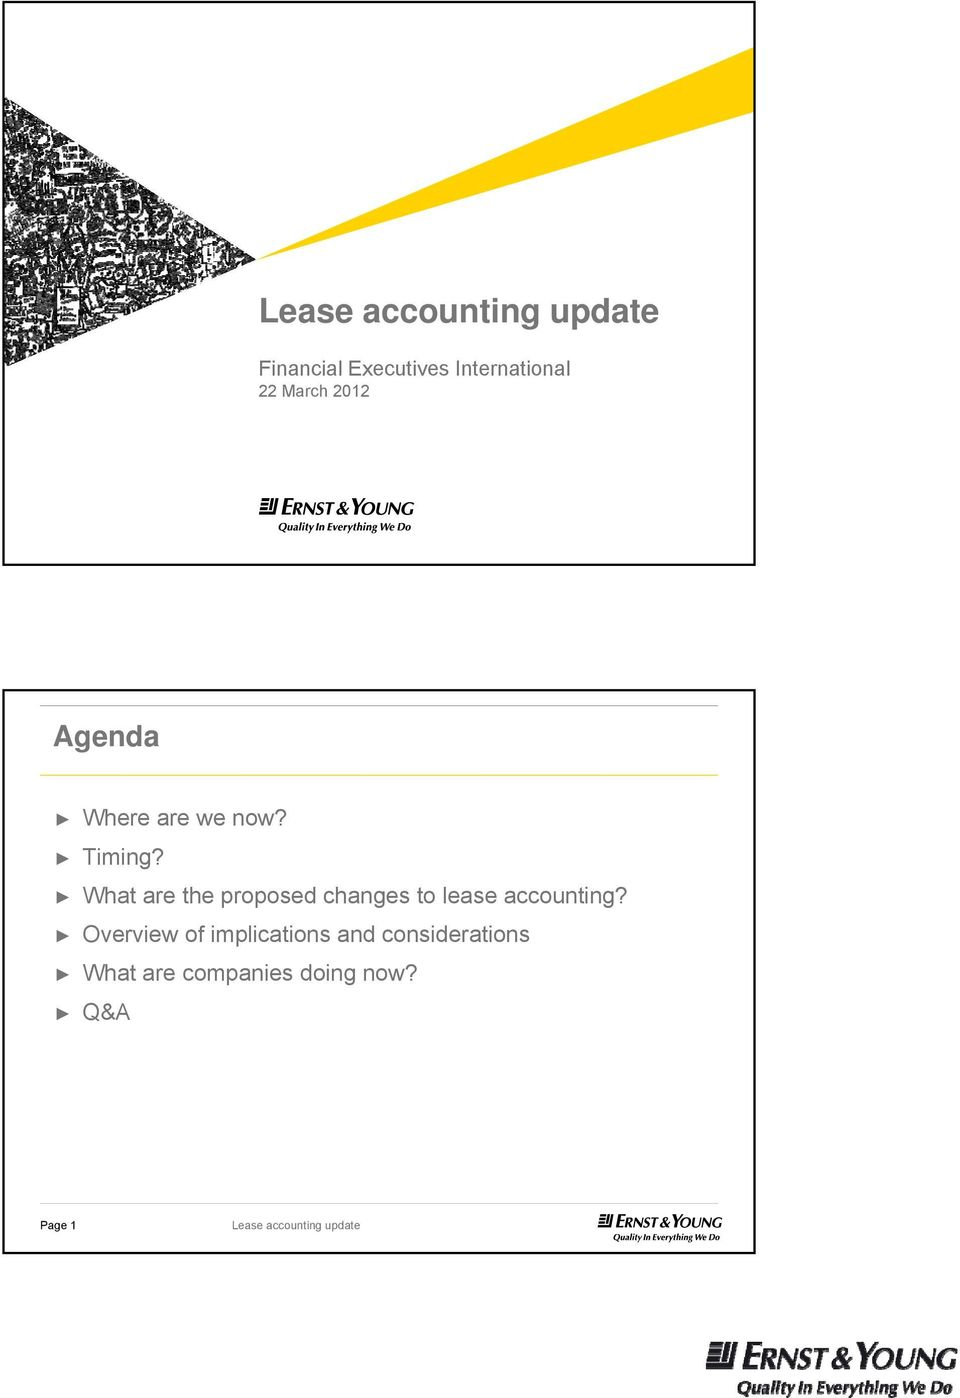 What are the proposed changes to lease accounting?